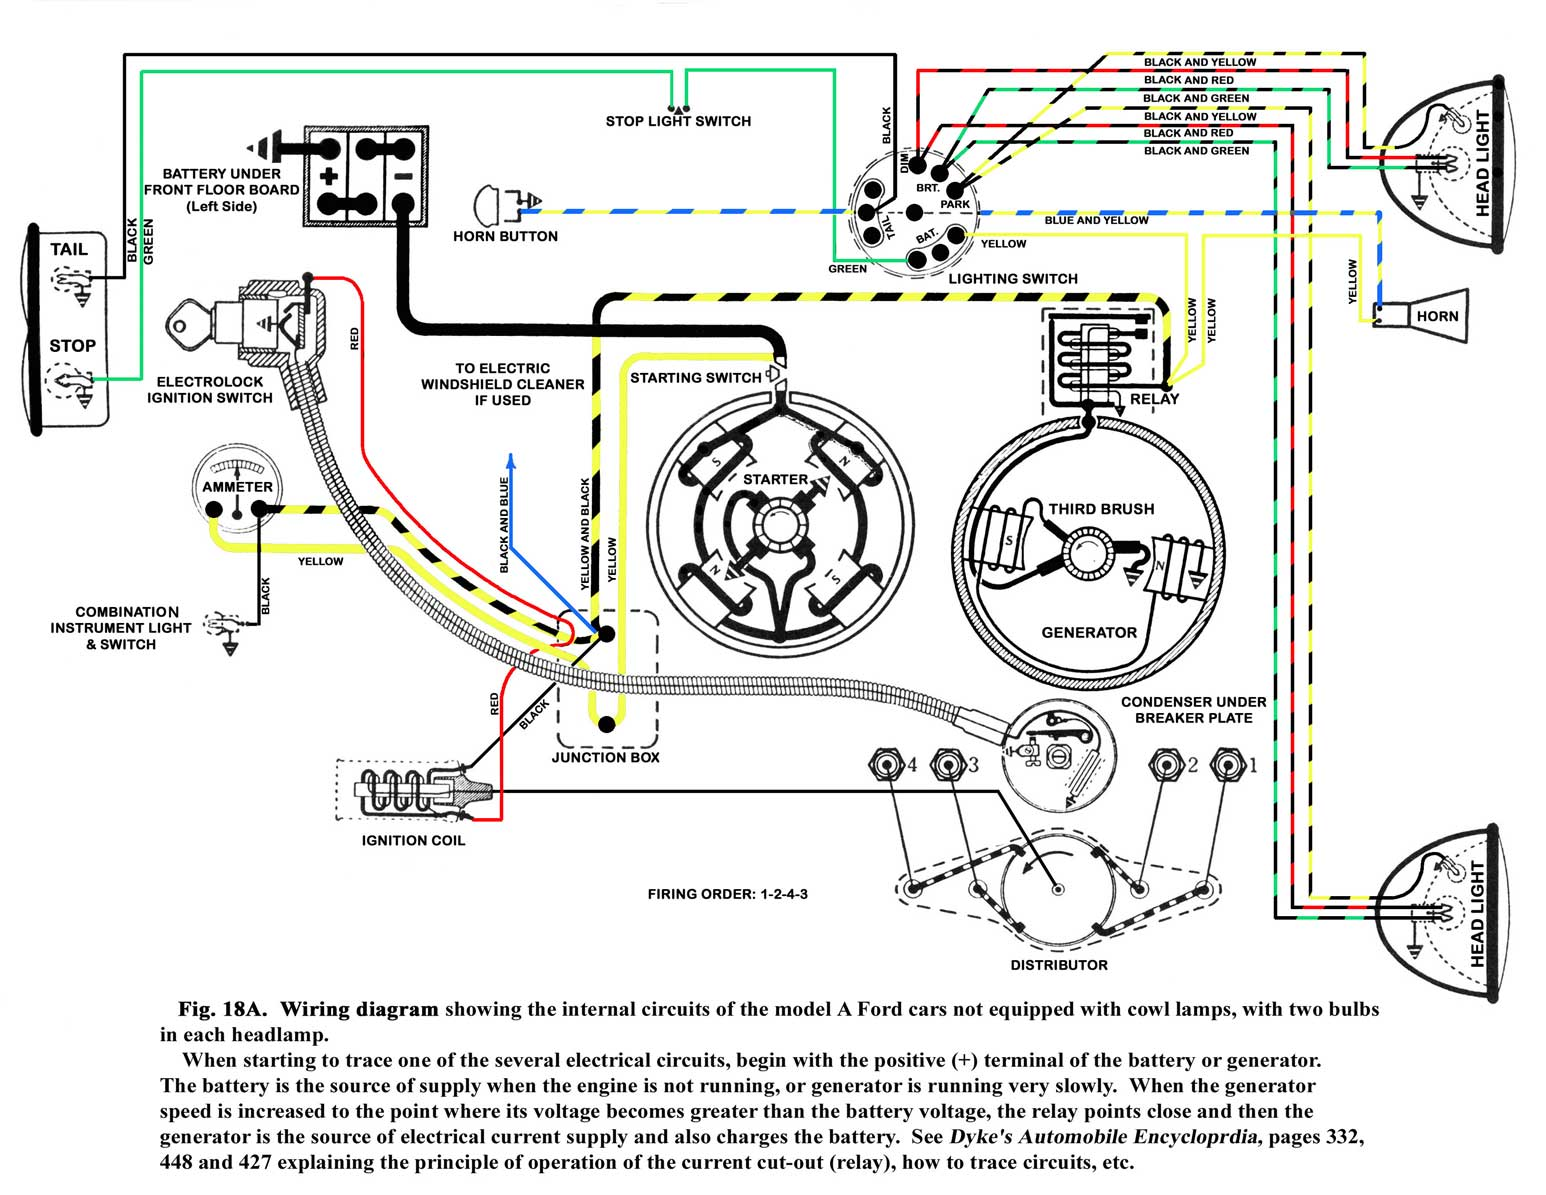 Ford Tractor F400 Electrical Wiring Diagram Worksheet And 3000 Light A Detailed Schematics Rh Jppastryarts Com 8n 3600 Diesel